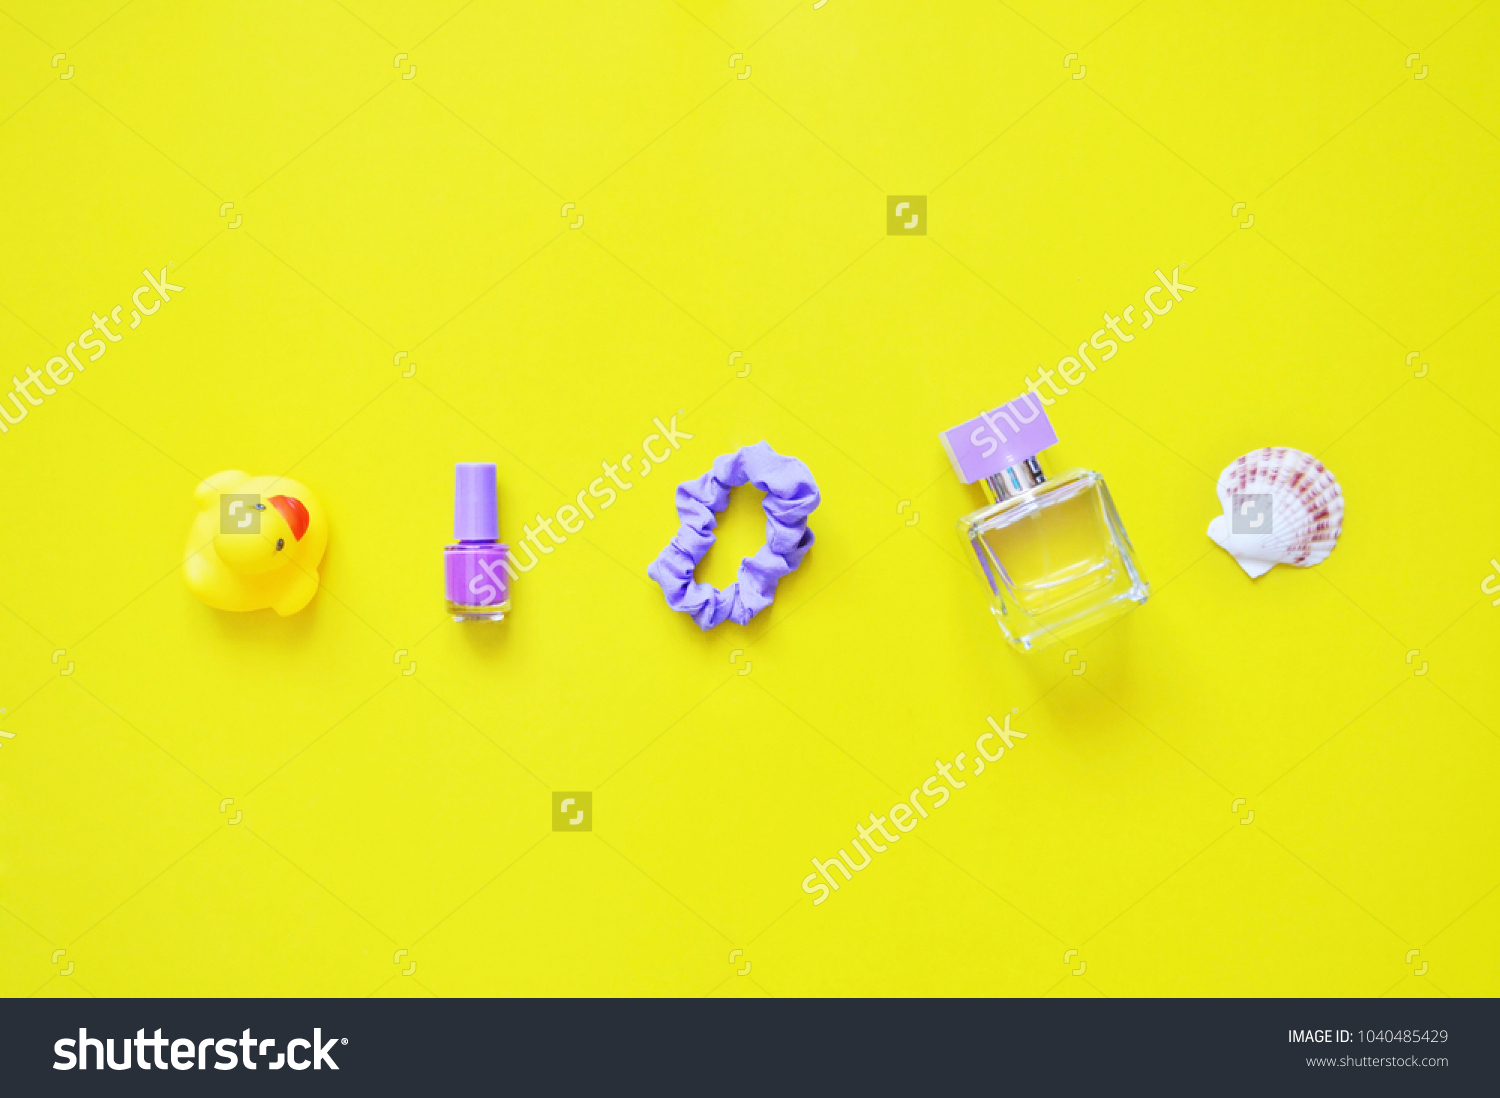 Toy Yellow Rubber Duck Purple Nail Stock Photo (Royalty Free ...